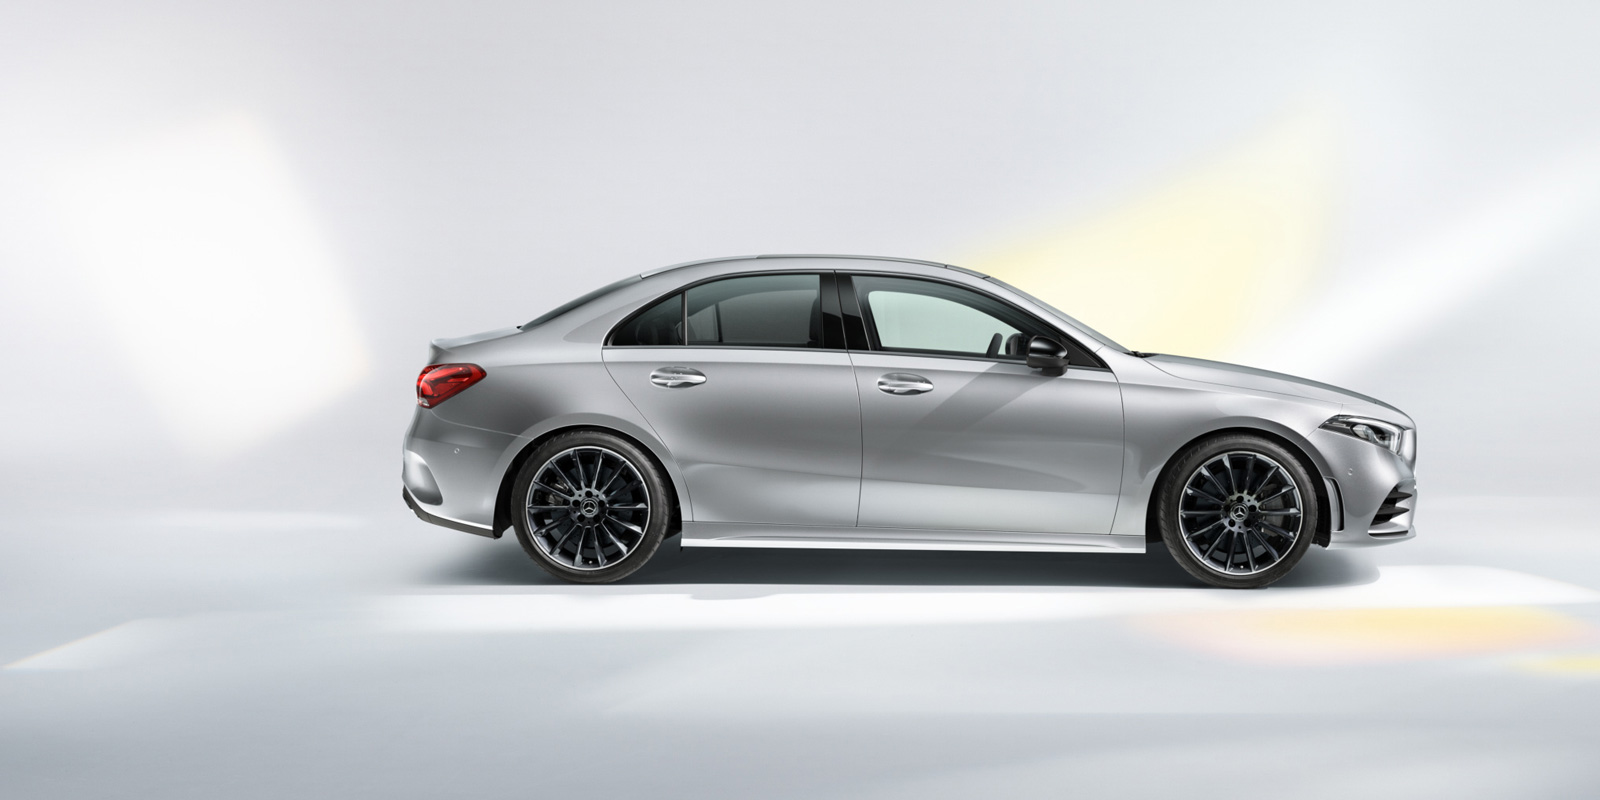 mercedes_benz_a_klasse_sedan_1600x800_06